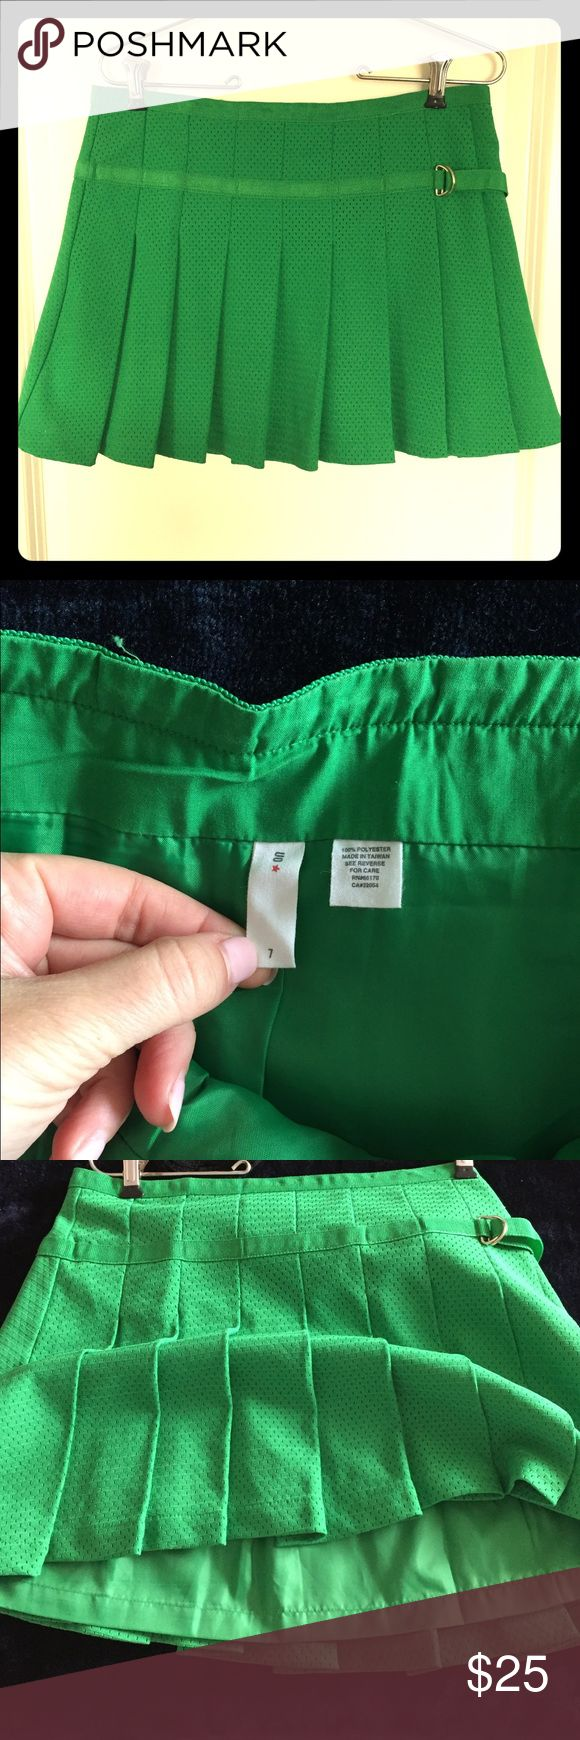 🍀Mini kelly green tennis skirt🍀 Lovely mini tennis skirt, fully lined and has a good weight so it won't blow up around or ride. Hidden side zipper.  Only worn twice in great condition. Looks brand new. Tag says size 7. It's equivalent to a US size 6. Urban Outfitters Skirts Mini